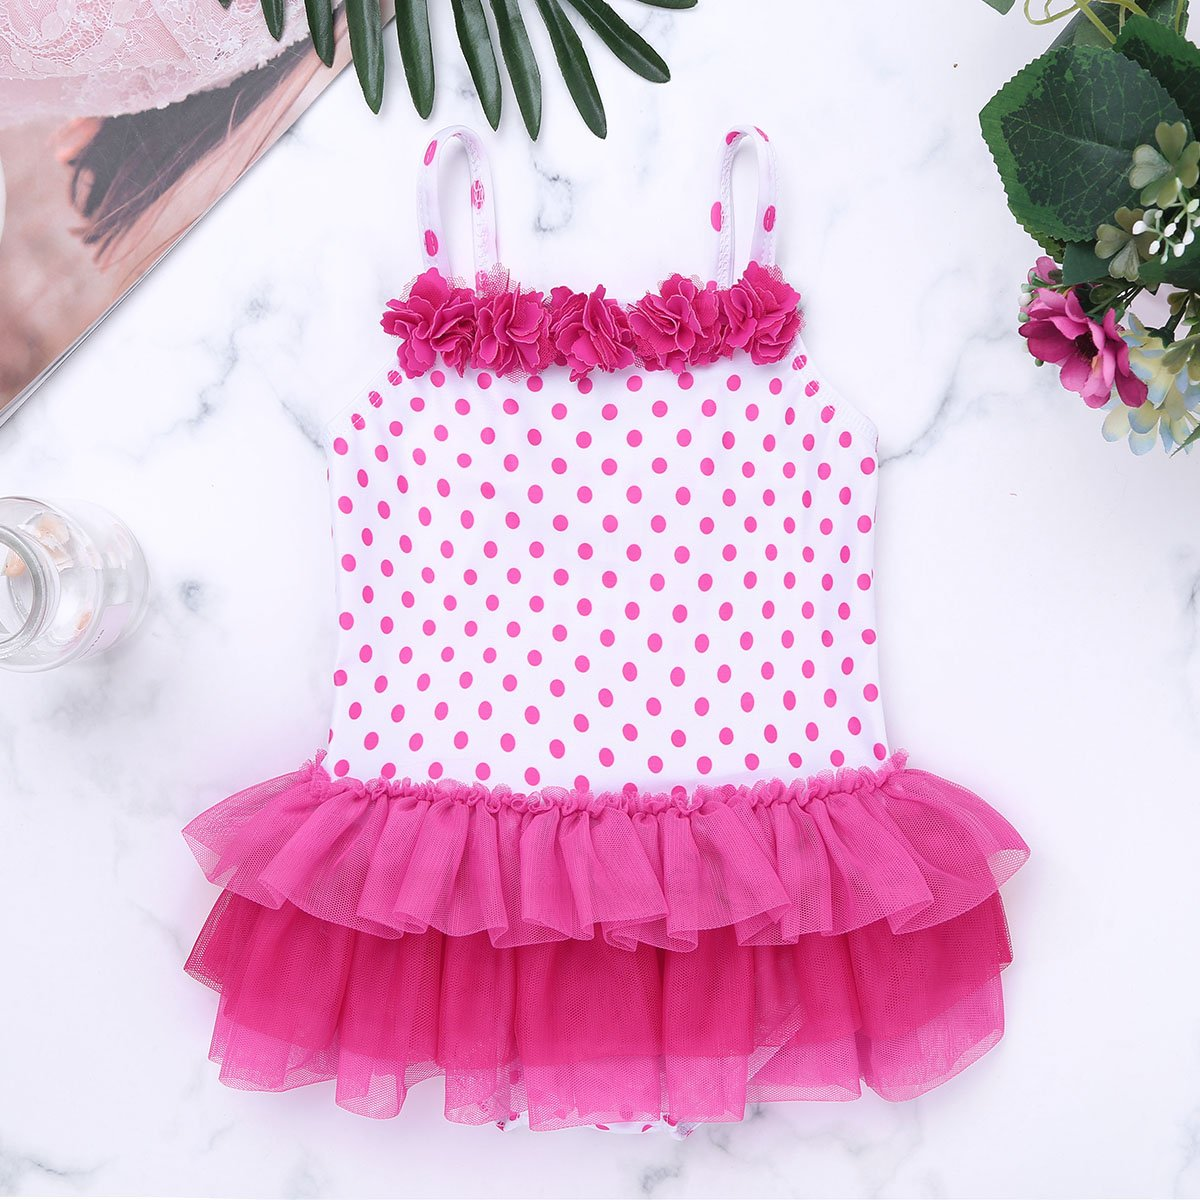 iixpin Infant Baby Girls One Piece Swimsuit Shoulder Straps Polka Dots Flowers Tiered Swimwear Bathing Suit